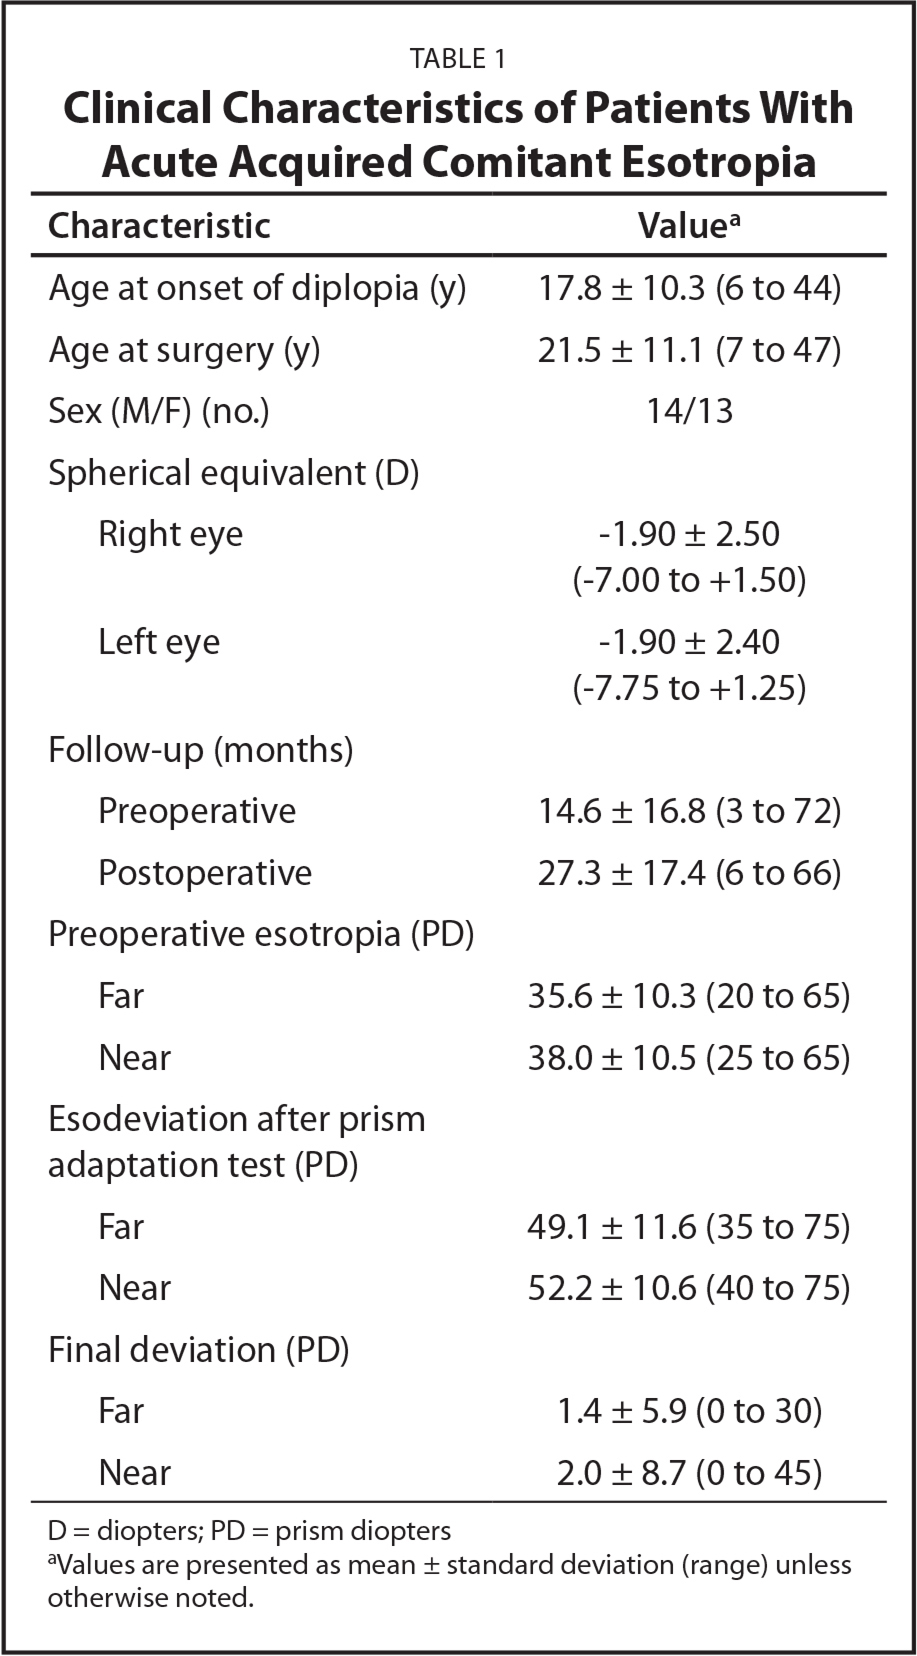 Clinical Characteristics of Patients With Acute Acquired Comitant Esotropia